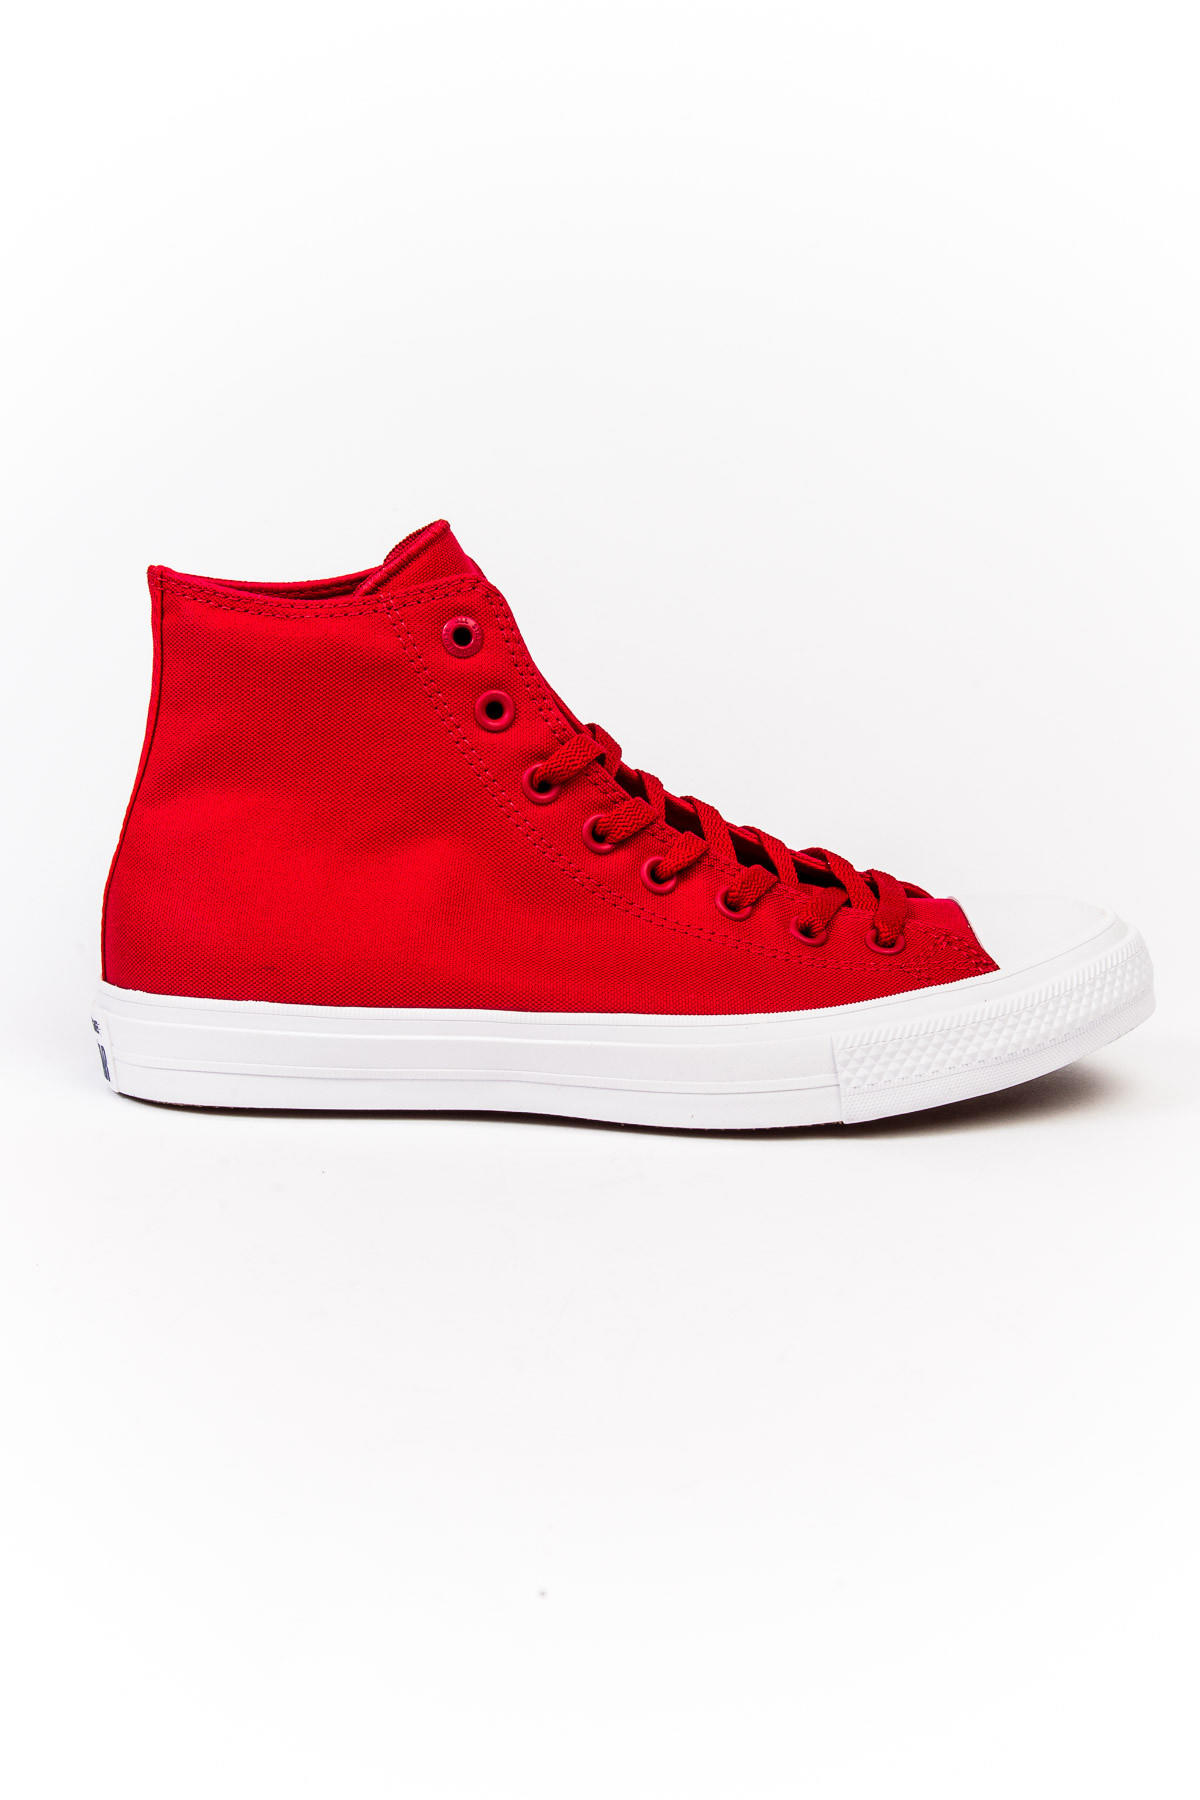 Converse Chuck Taylor All Star II Red Hi from Probus  45c11f72cf